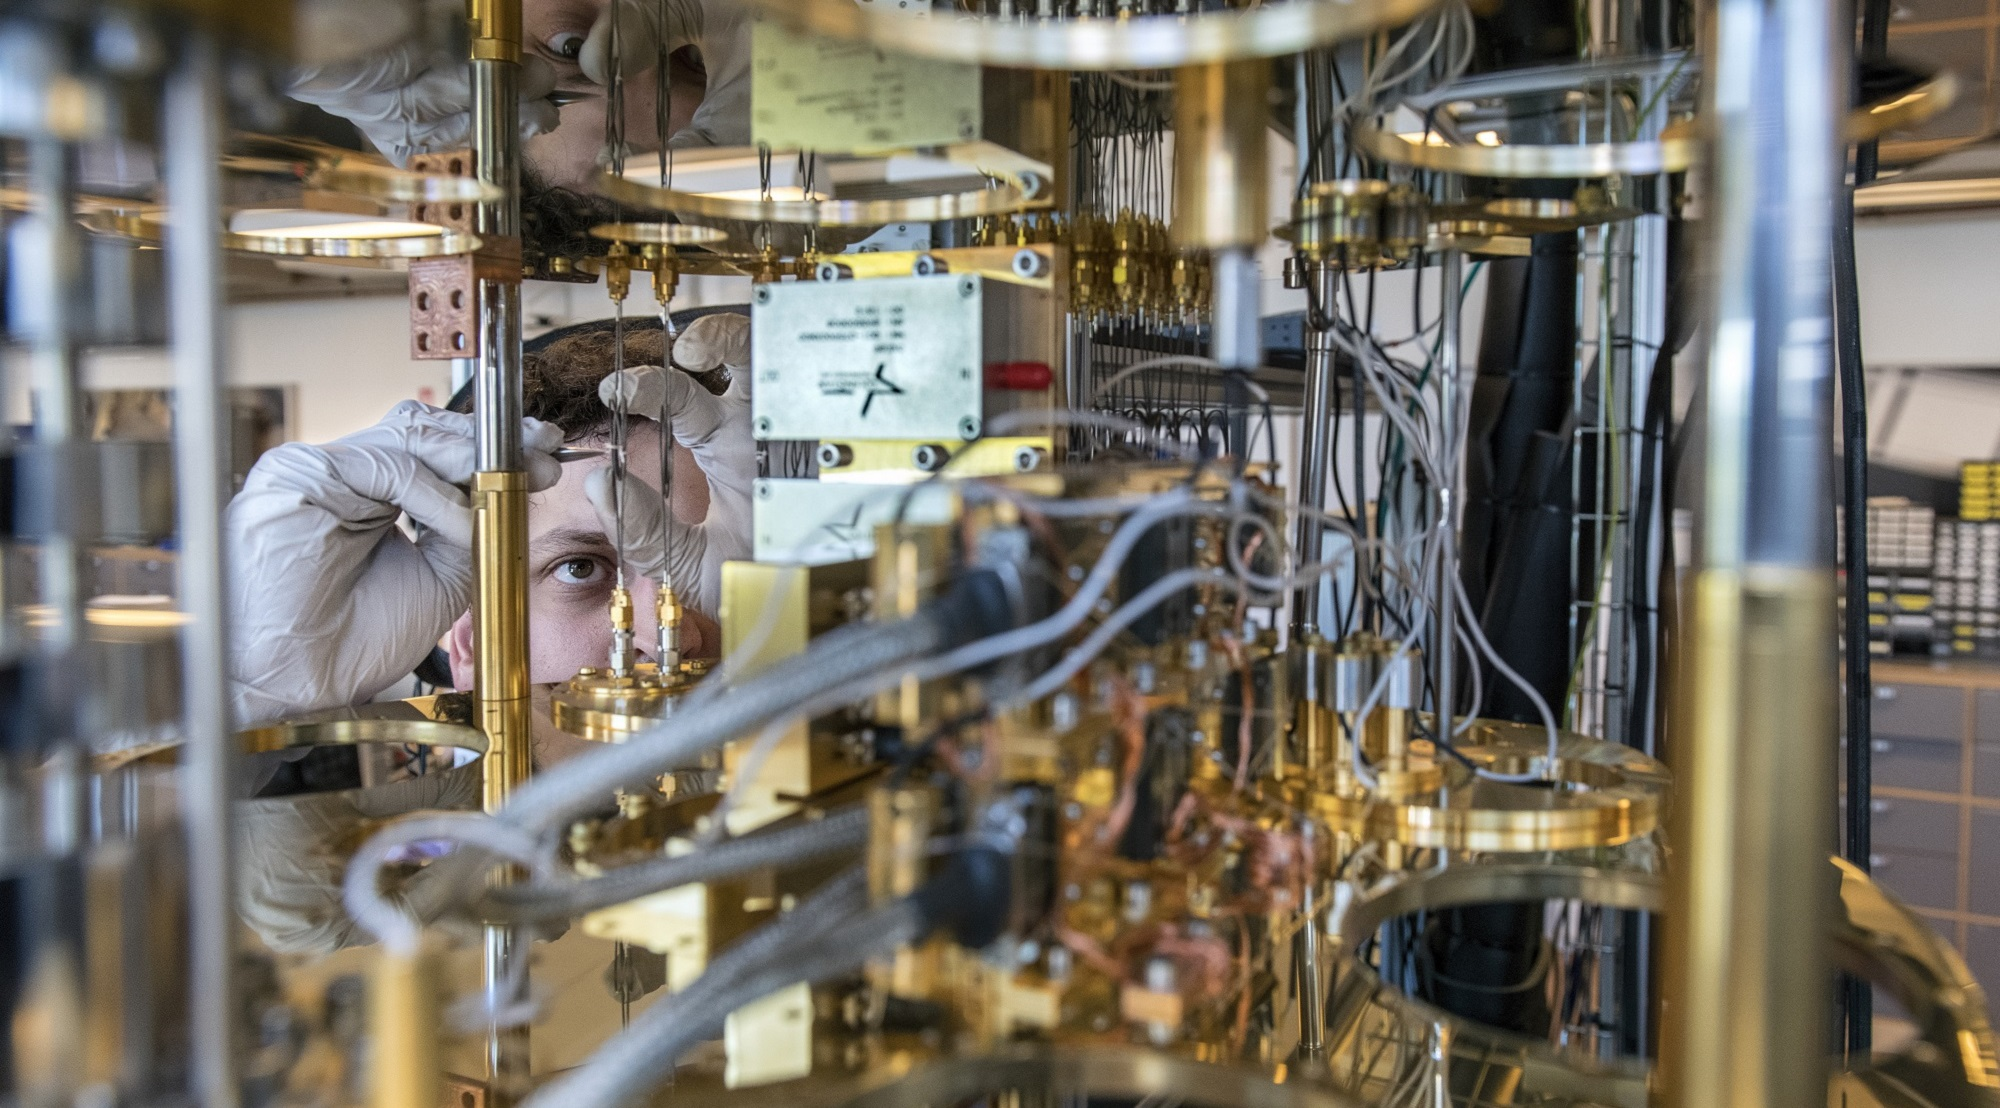 Microsoft Quantum Computing Project in Copenhagen, Denmark. June 2018